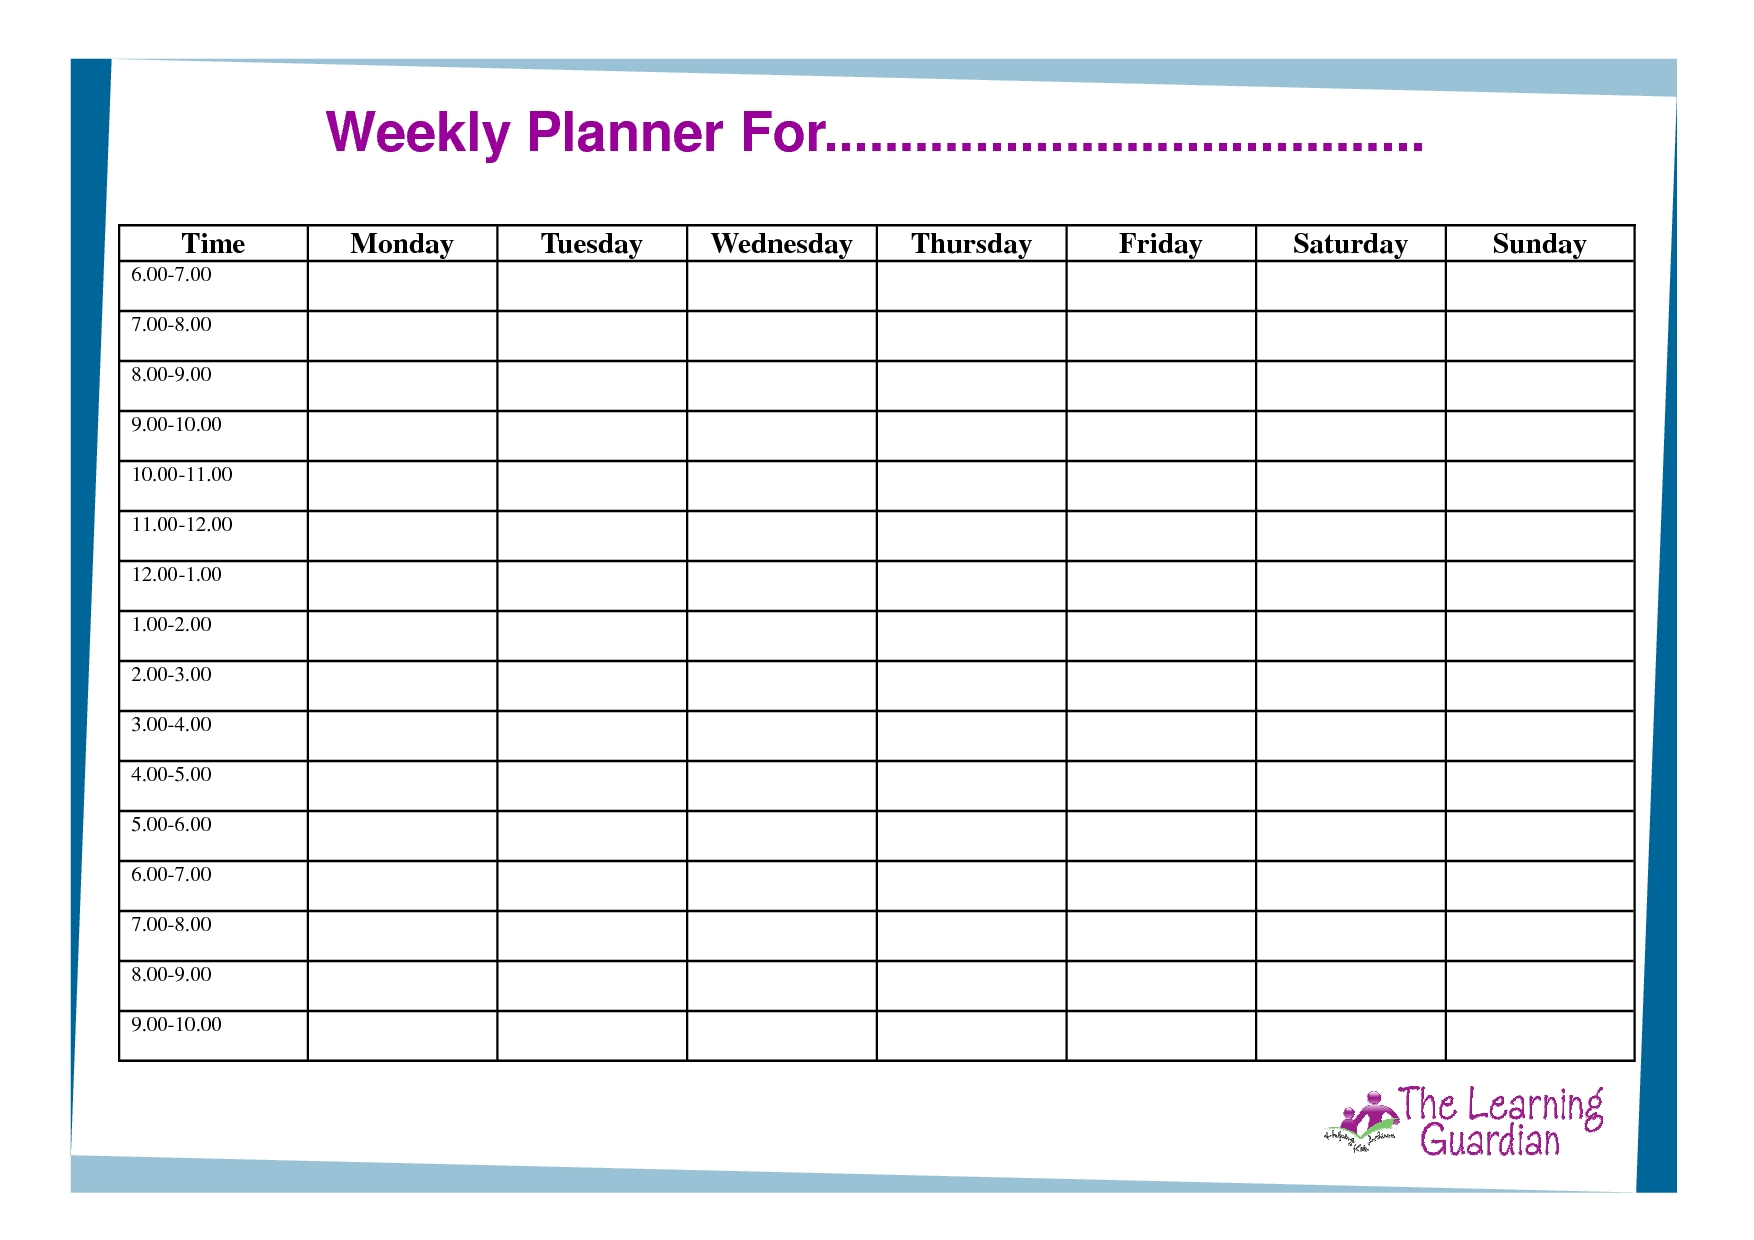 Free Printable Weekly Calendar Templates | Weekly Planner  Printable Monday To Sunday Weekly Planner